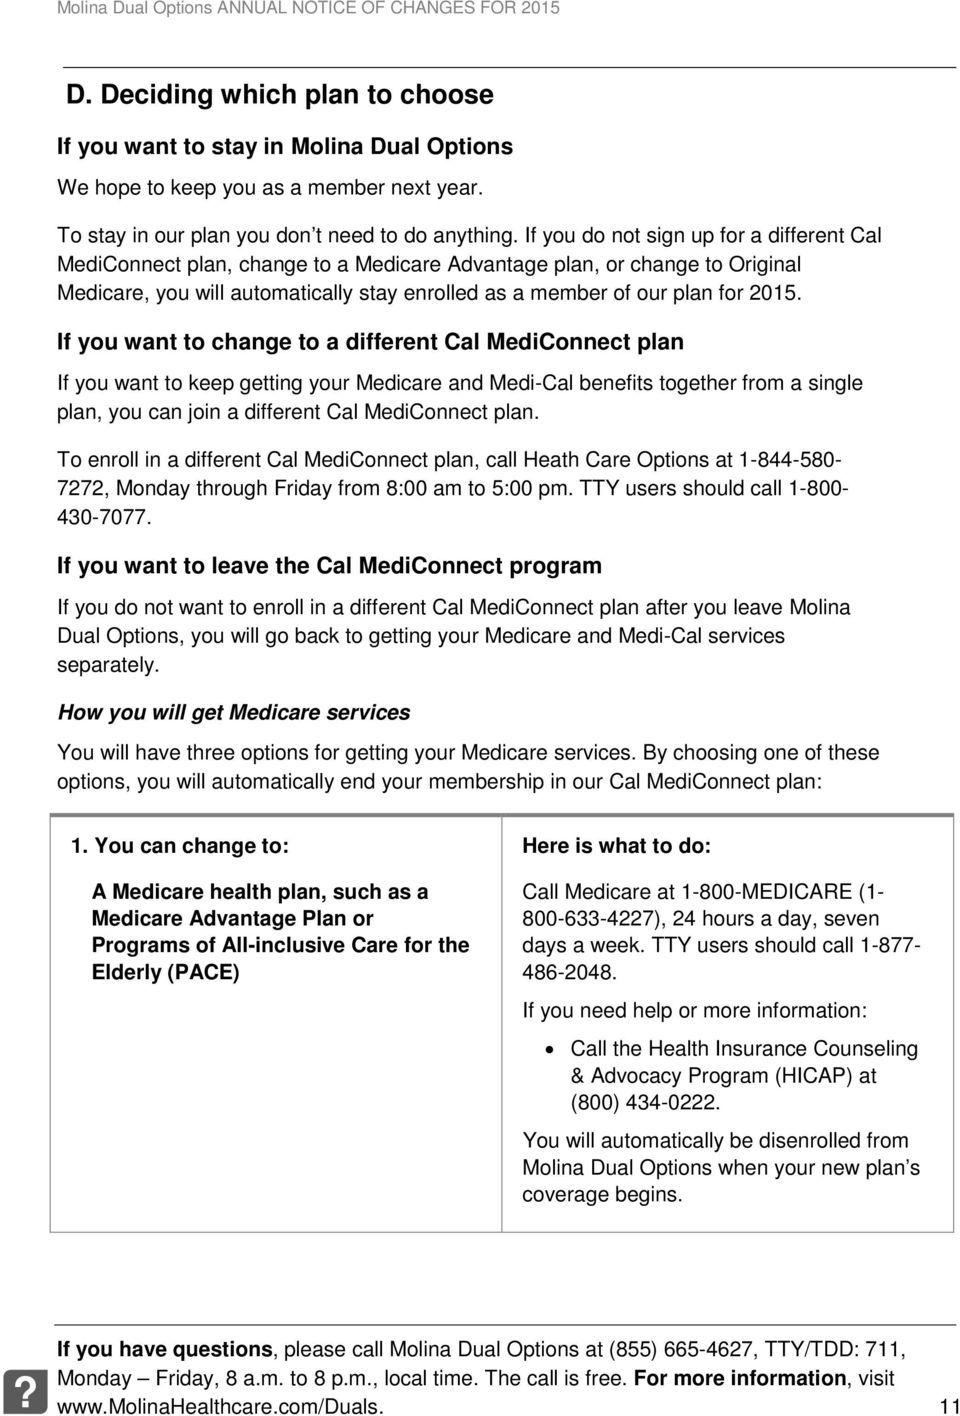 If you want to change to a different Cal MediConnect plan If you want to keep getting your Medicare and Medi-Cal benefits together from a single plan, you can join a different Cal MediConnect plan.